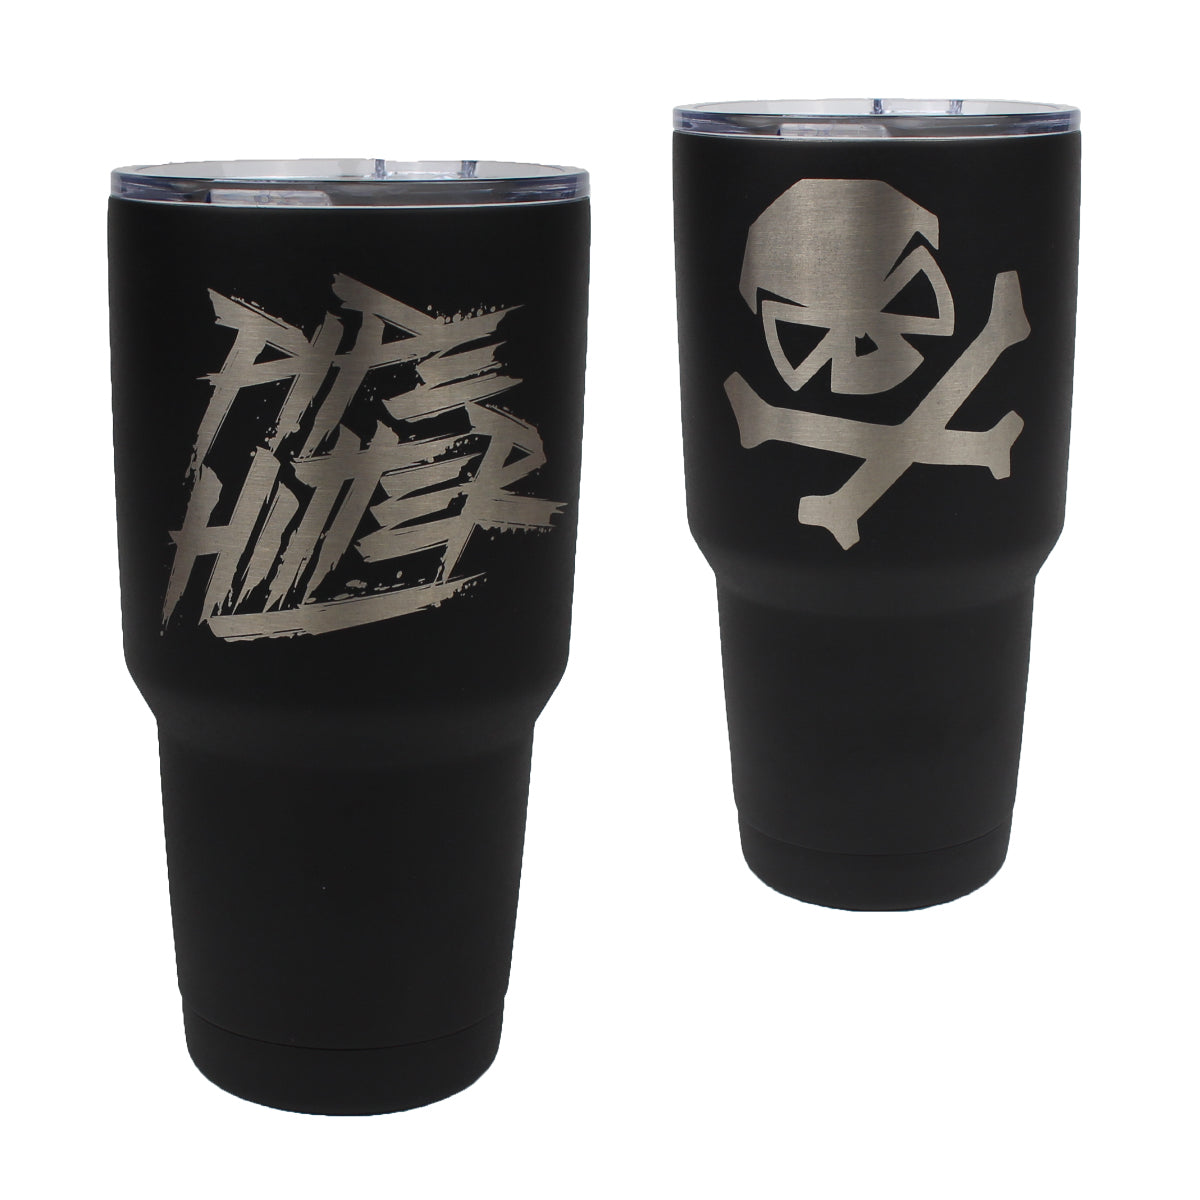 Pipe Hitter - 30oz Tumbler - Pipe Hitters Union